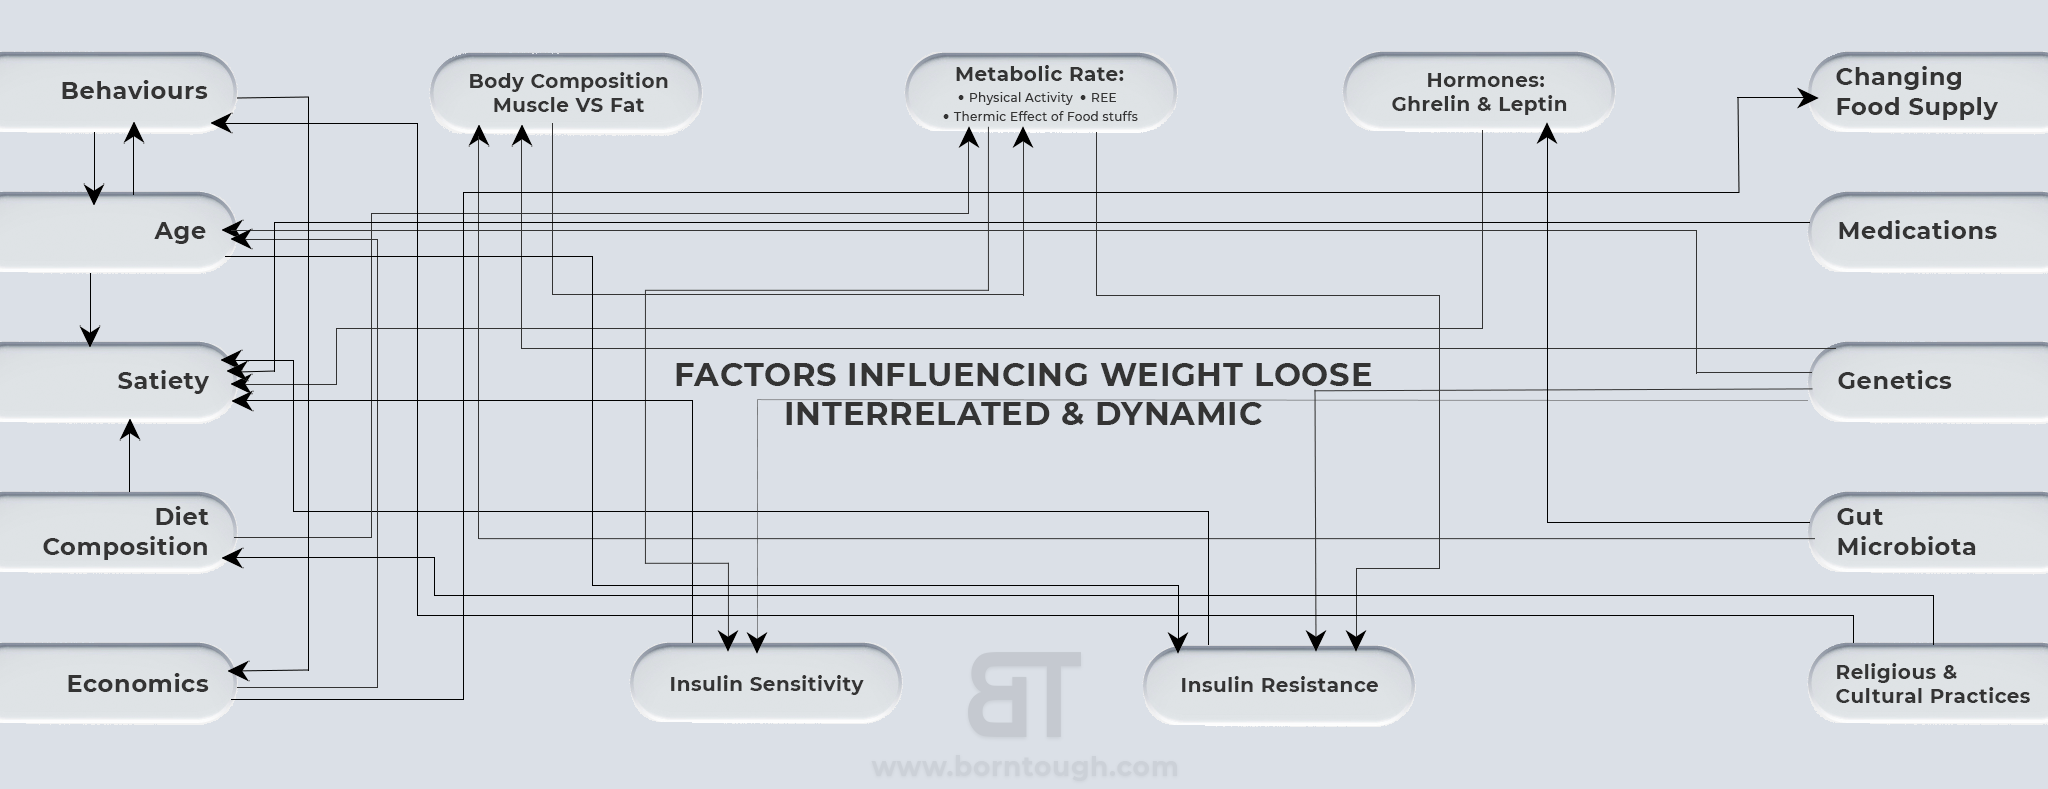 Factors That Influence Weight Loss